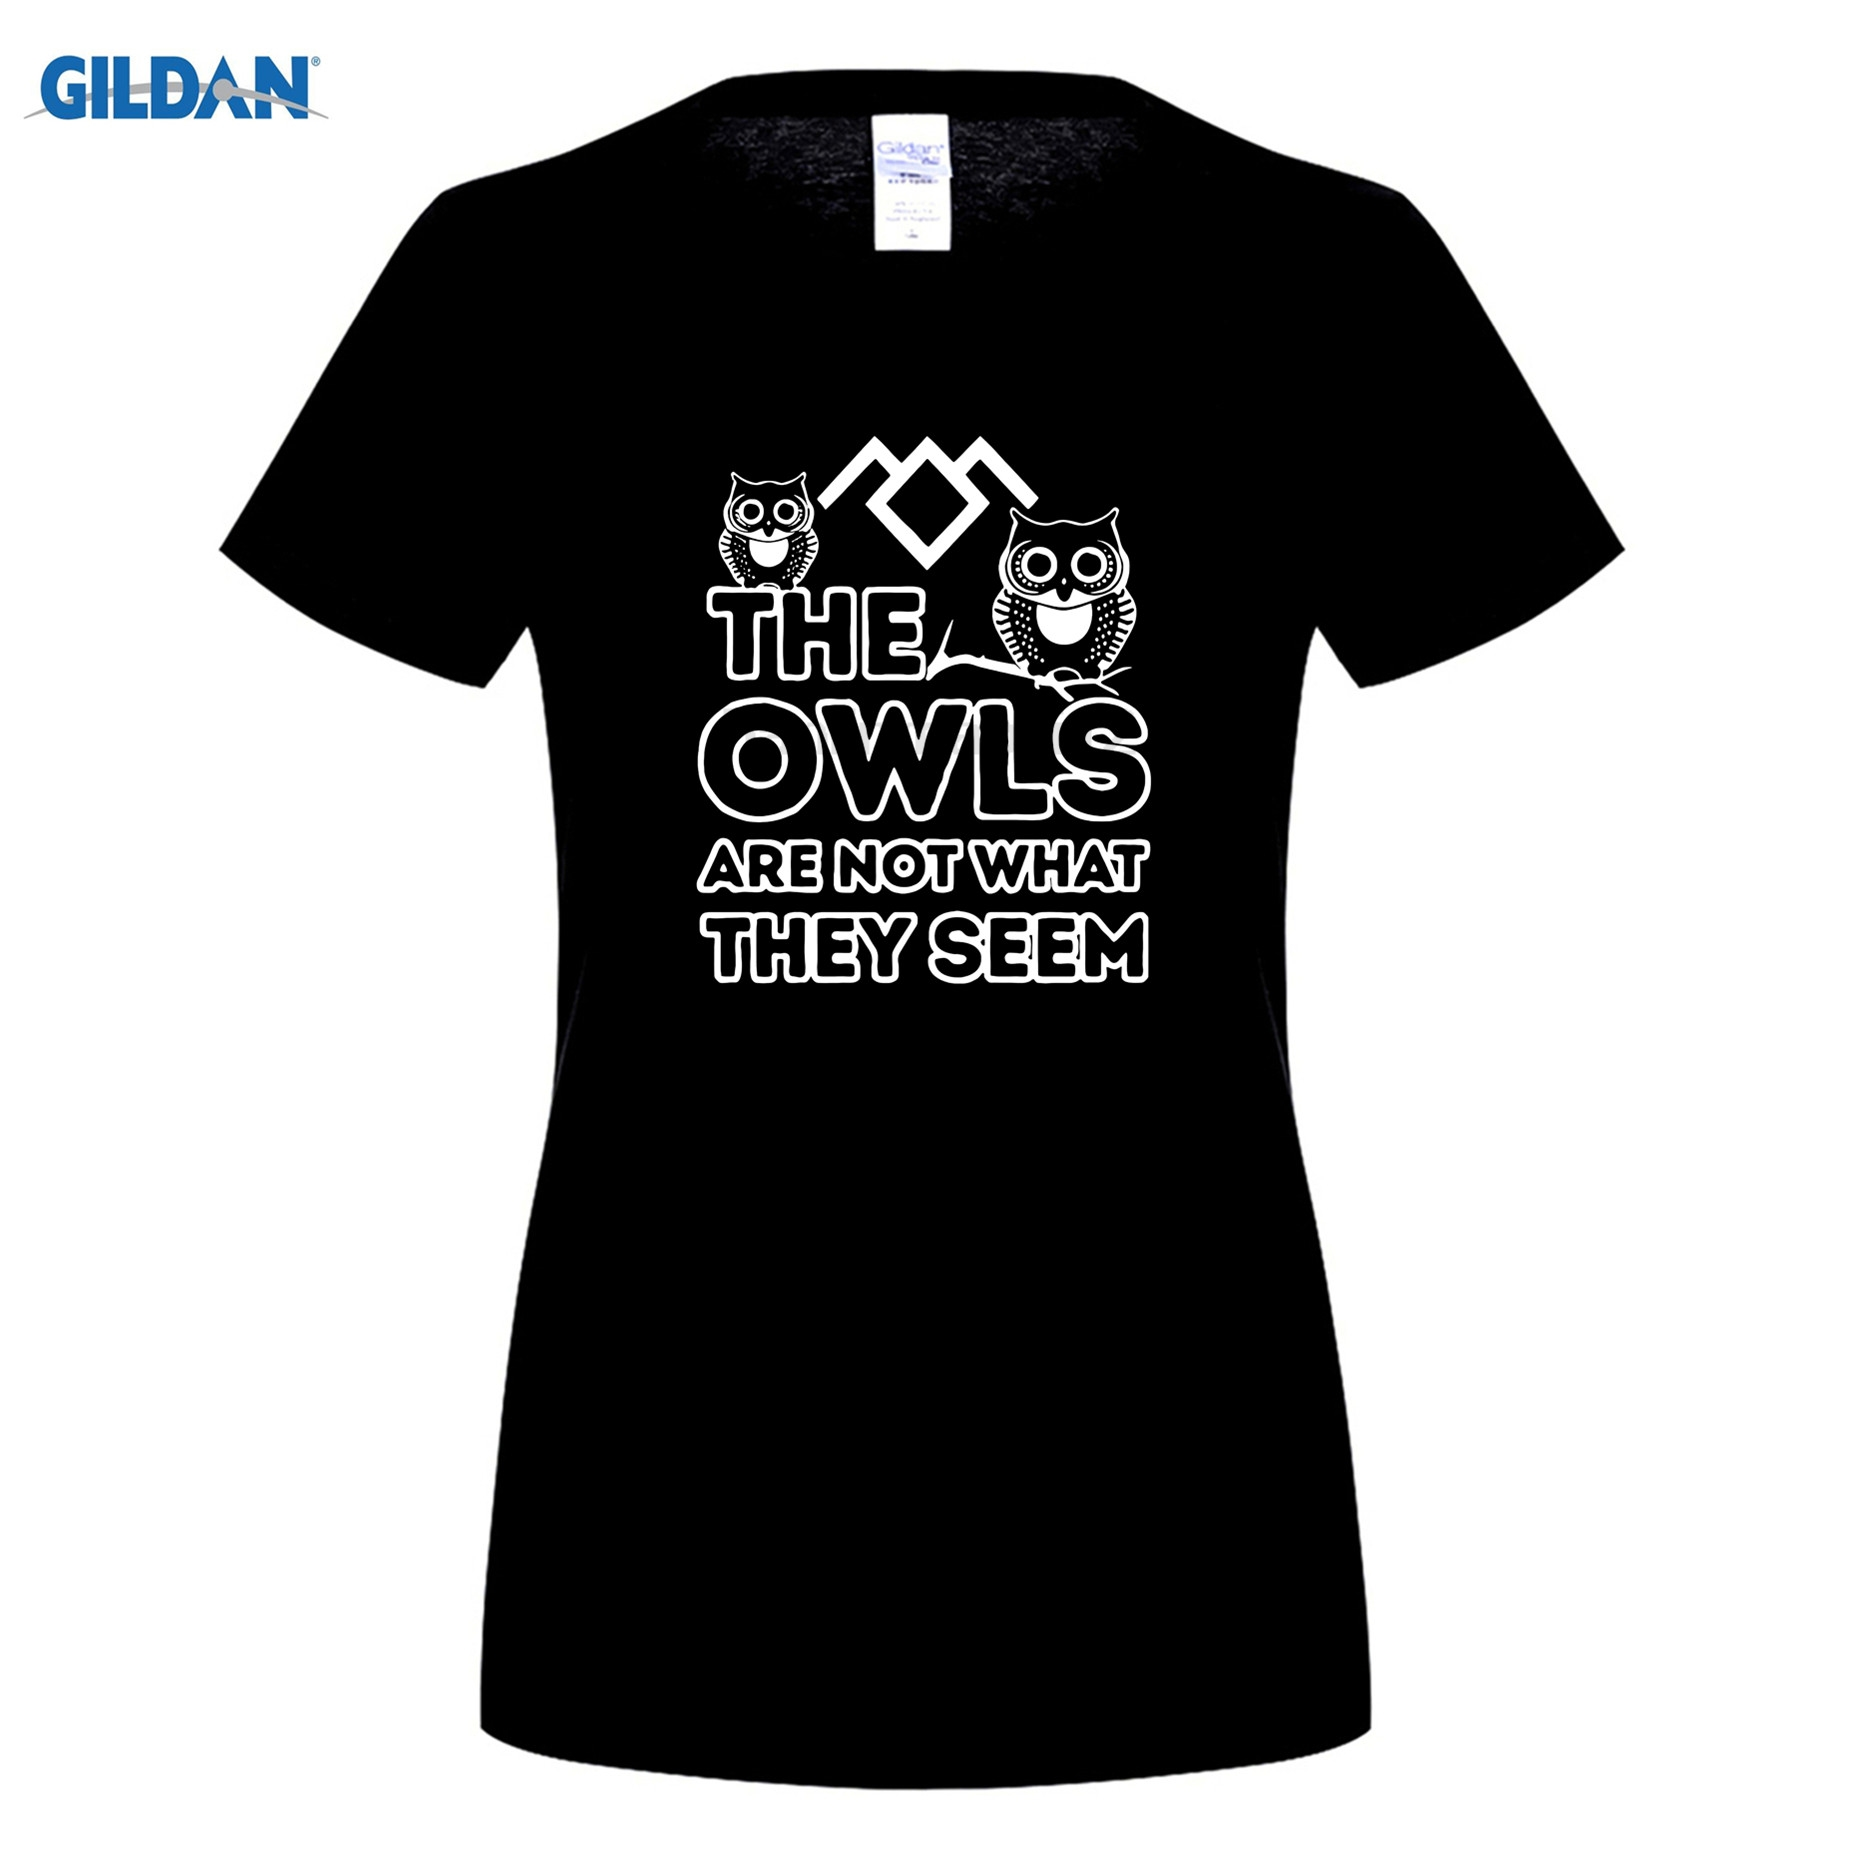 GILDAN funny womens t shirt black Twin Peaks Show The Owls Are Not What They Seem O-Neck t-shirts for women